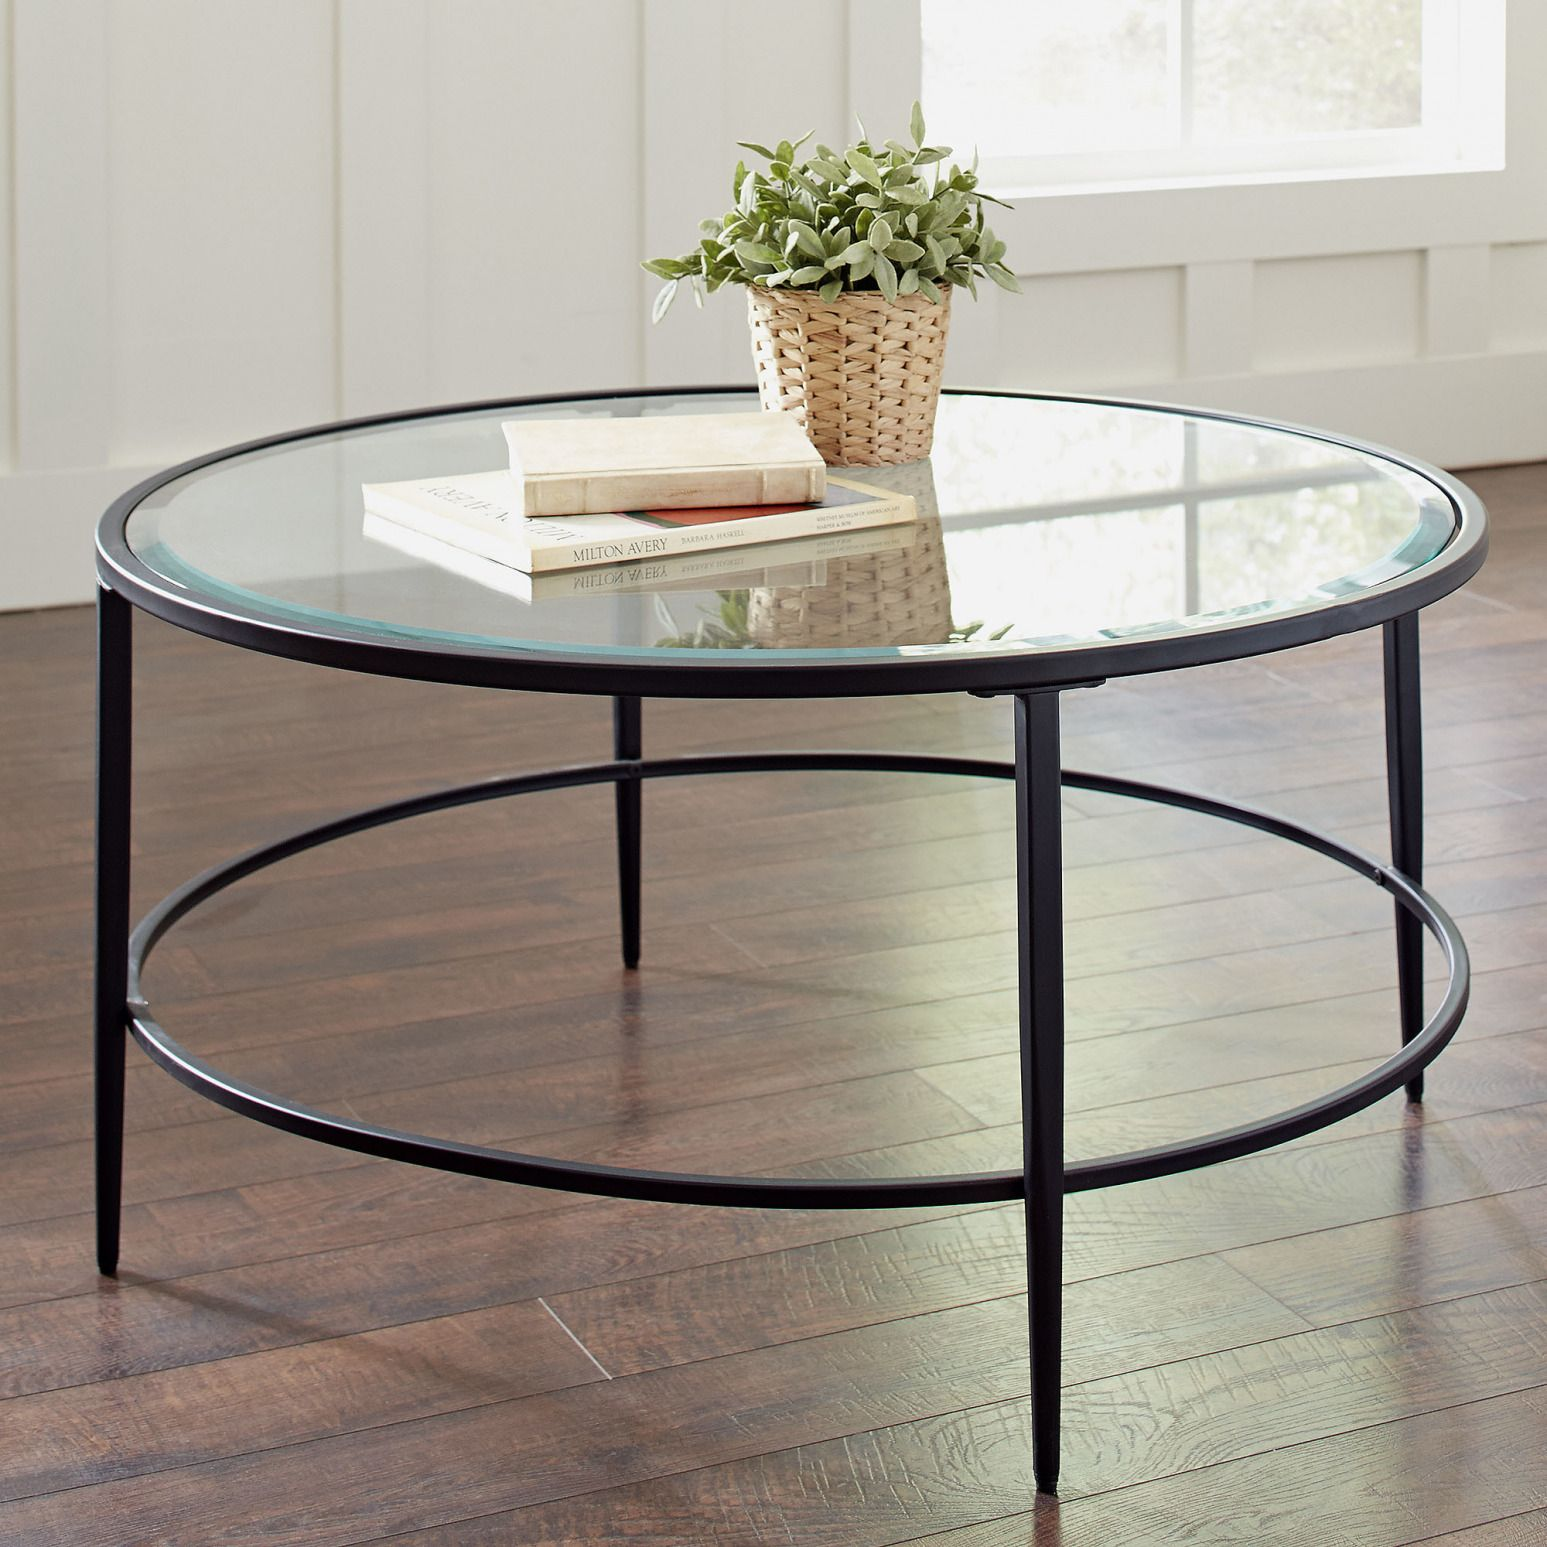 100 Round Table Glass Replacement Best Home Furniture Check More At Http Livelylighting C Circle Coffee Tables Round Glass Coffee Table Round Coffee Table [ 1547 x 1547 Pixel ]